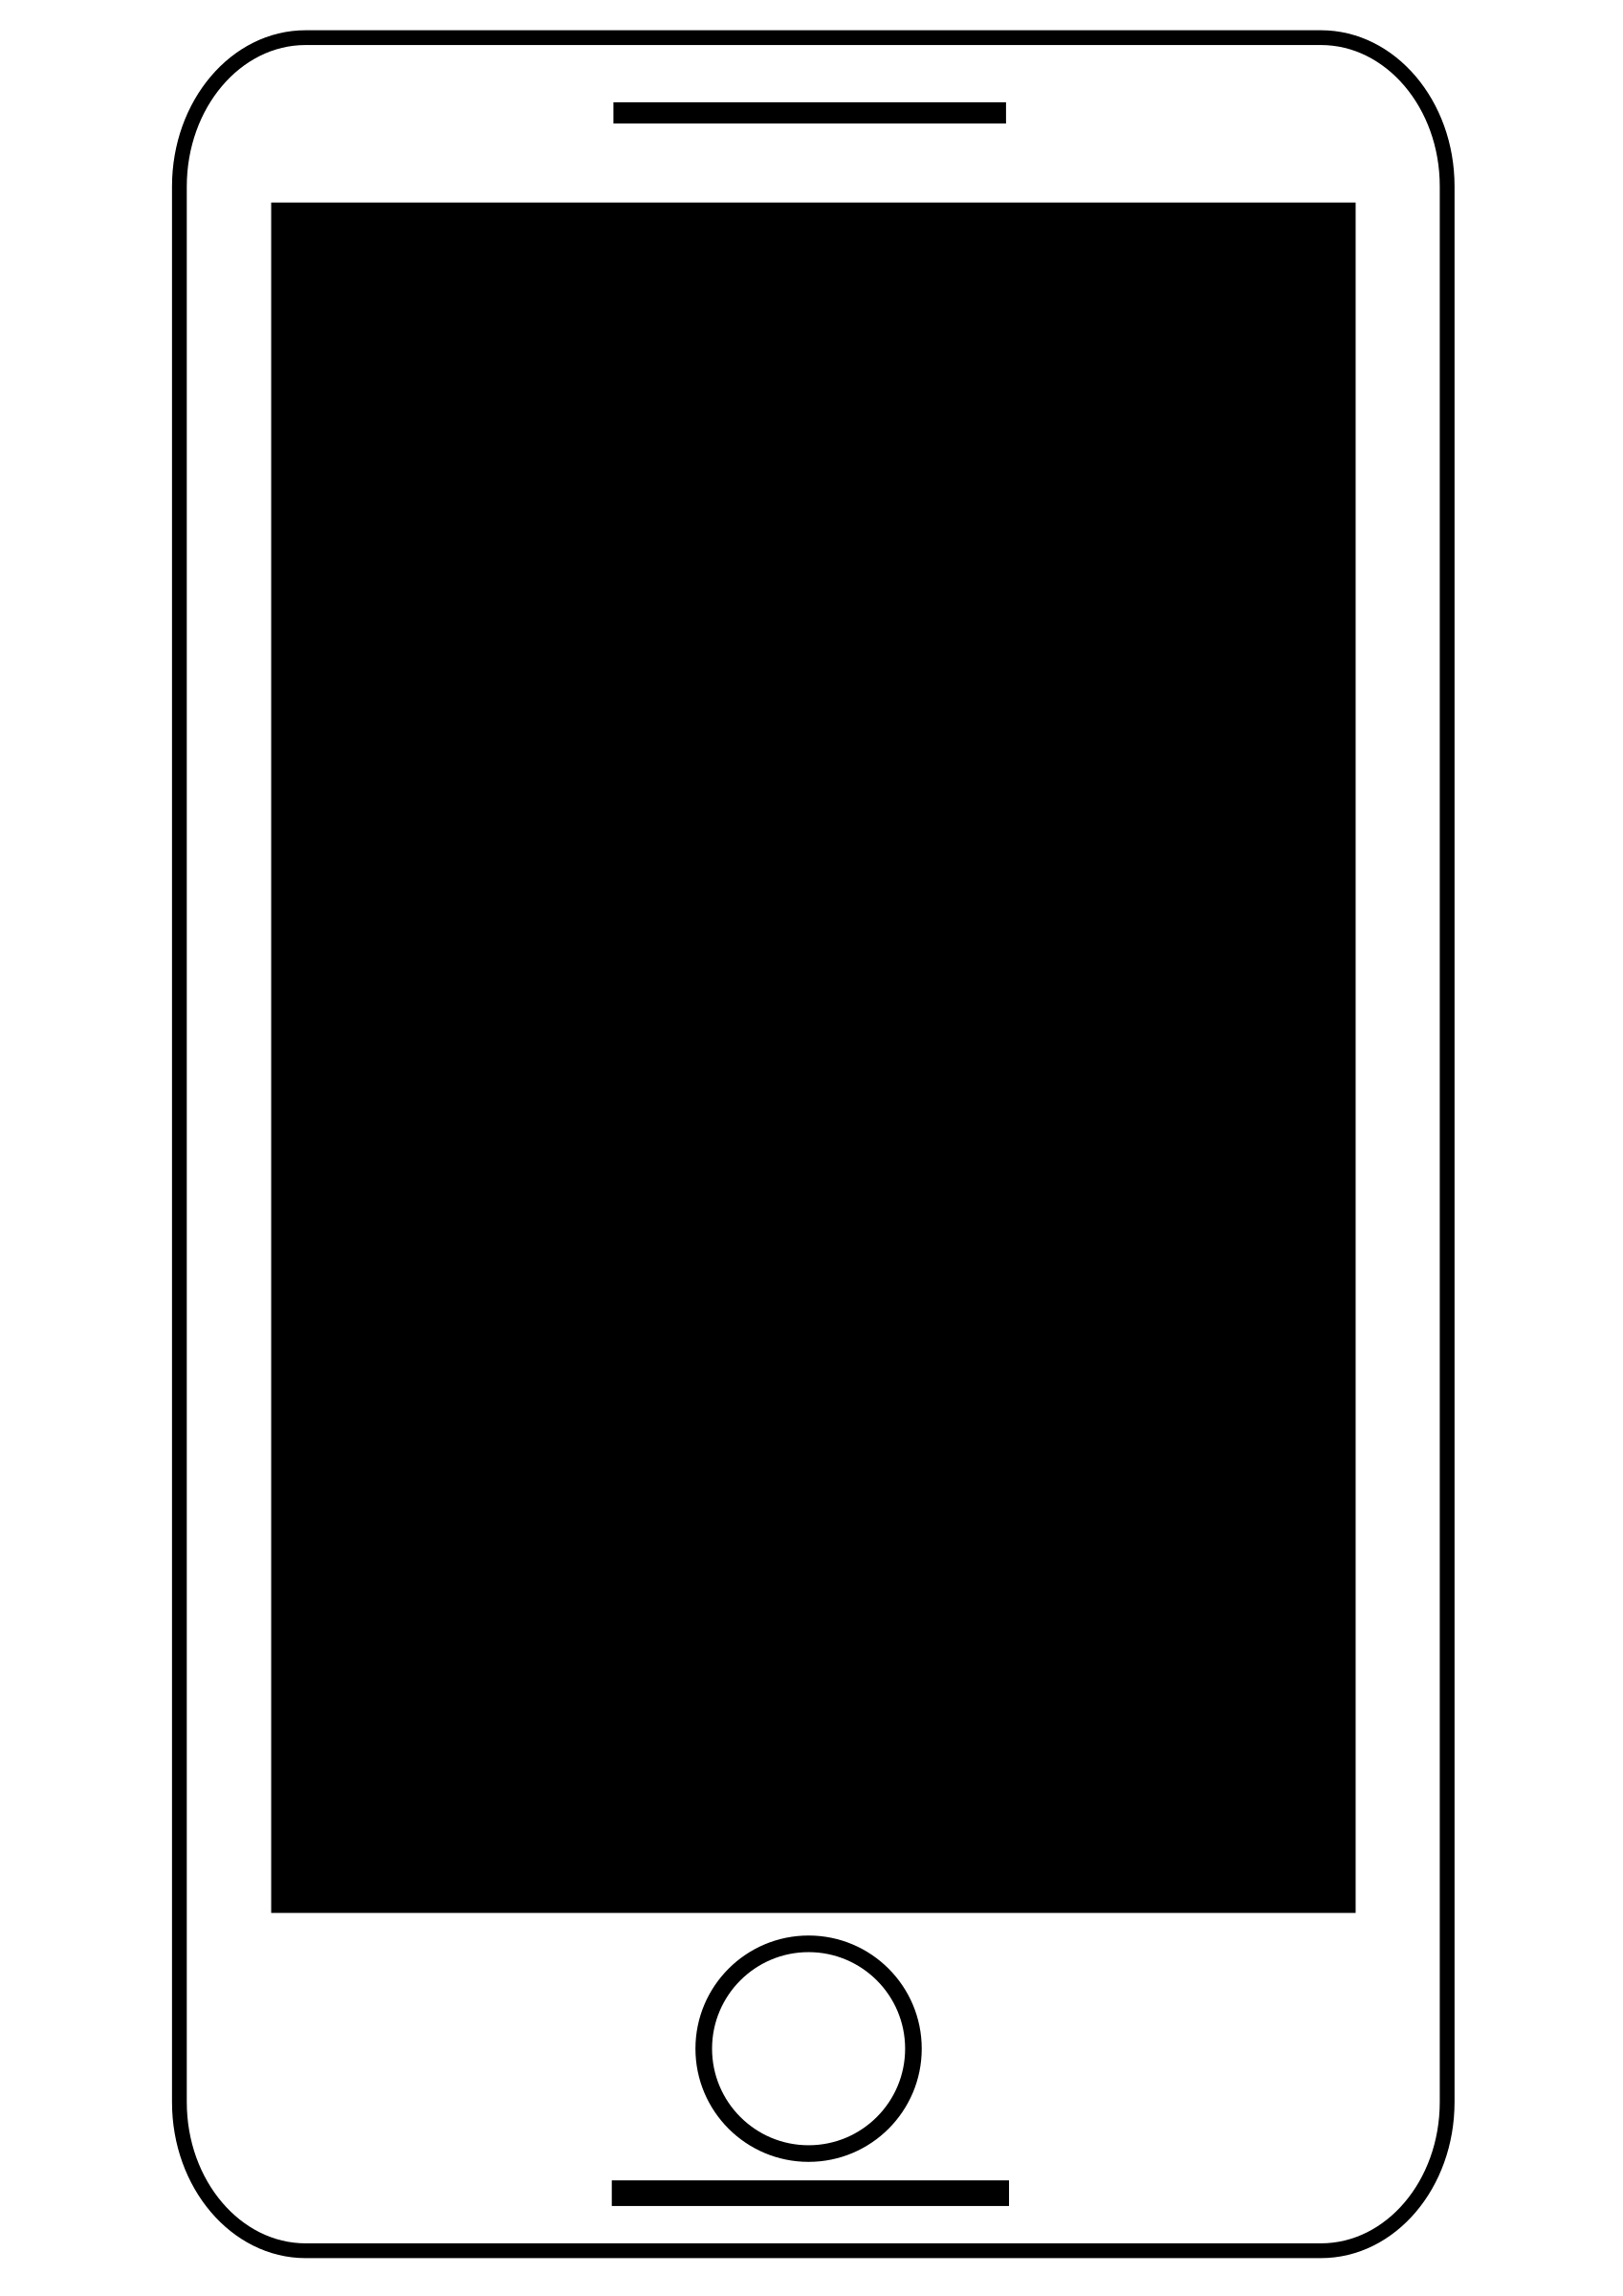 clipart animated smart phone black and white free download rh openclipart org No Cell Phone Use Clip Art Animated Word Telephone